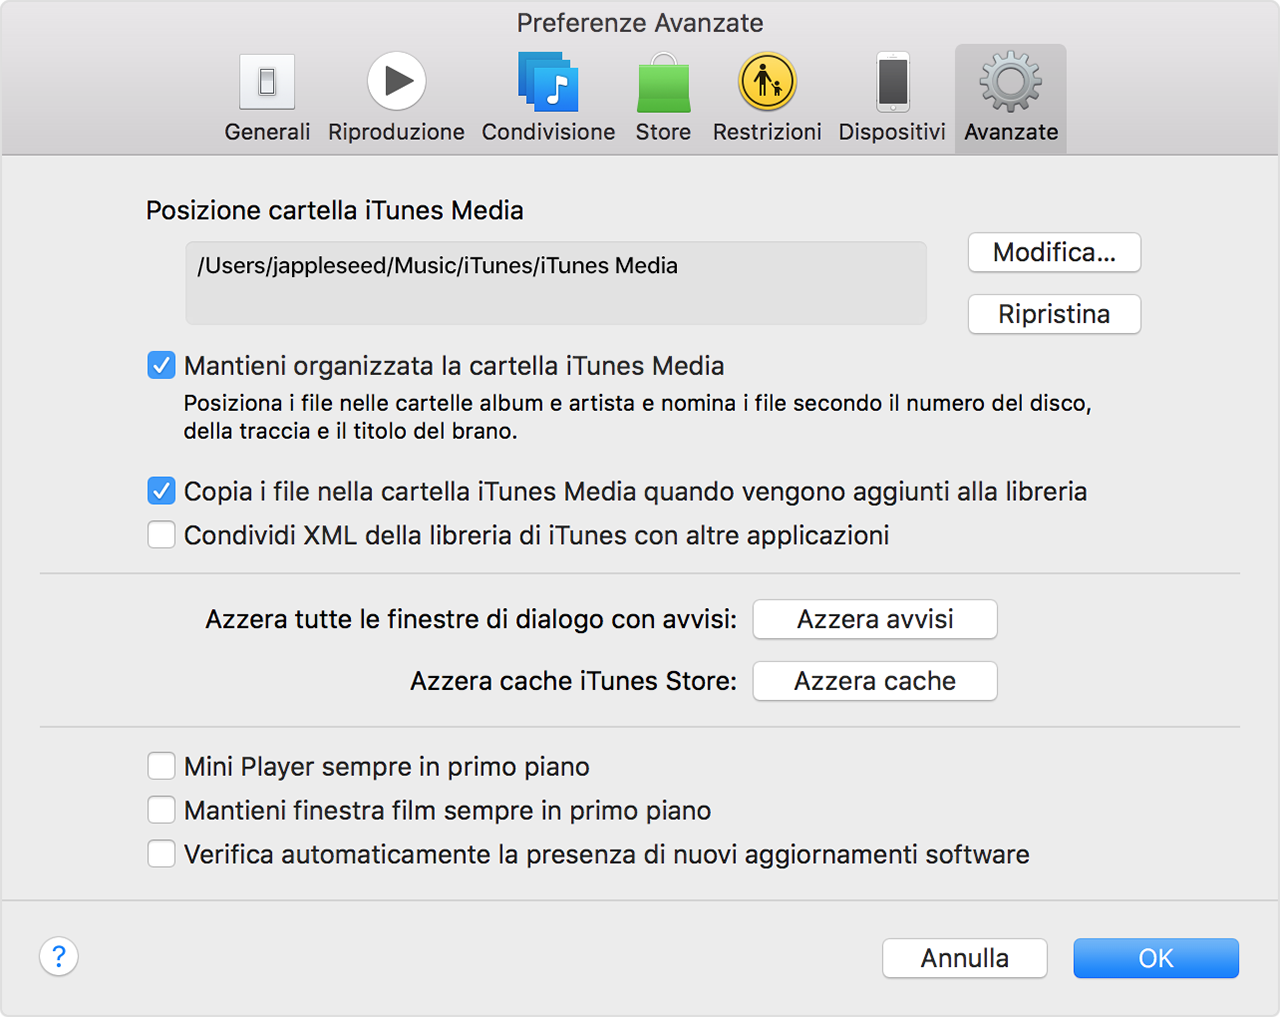 Preferenze avanzate di iTunes